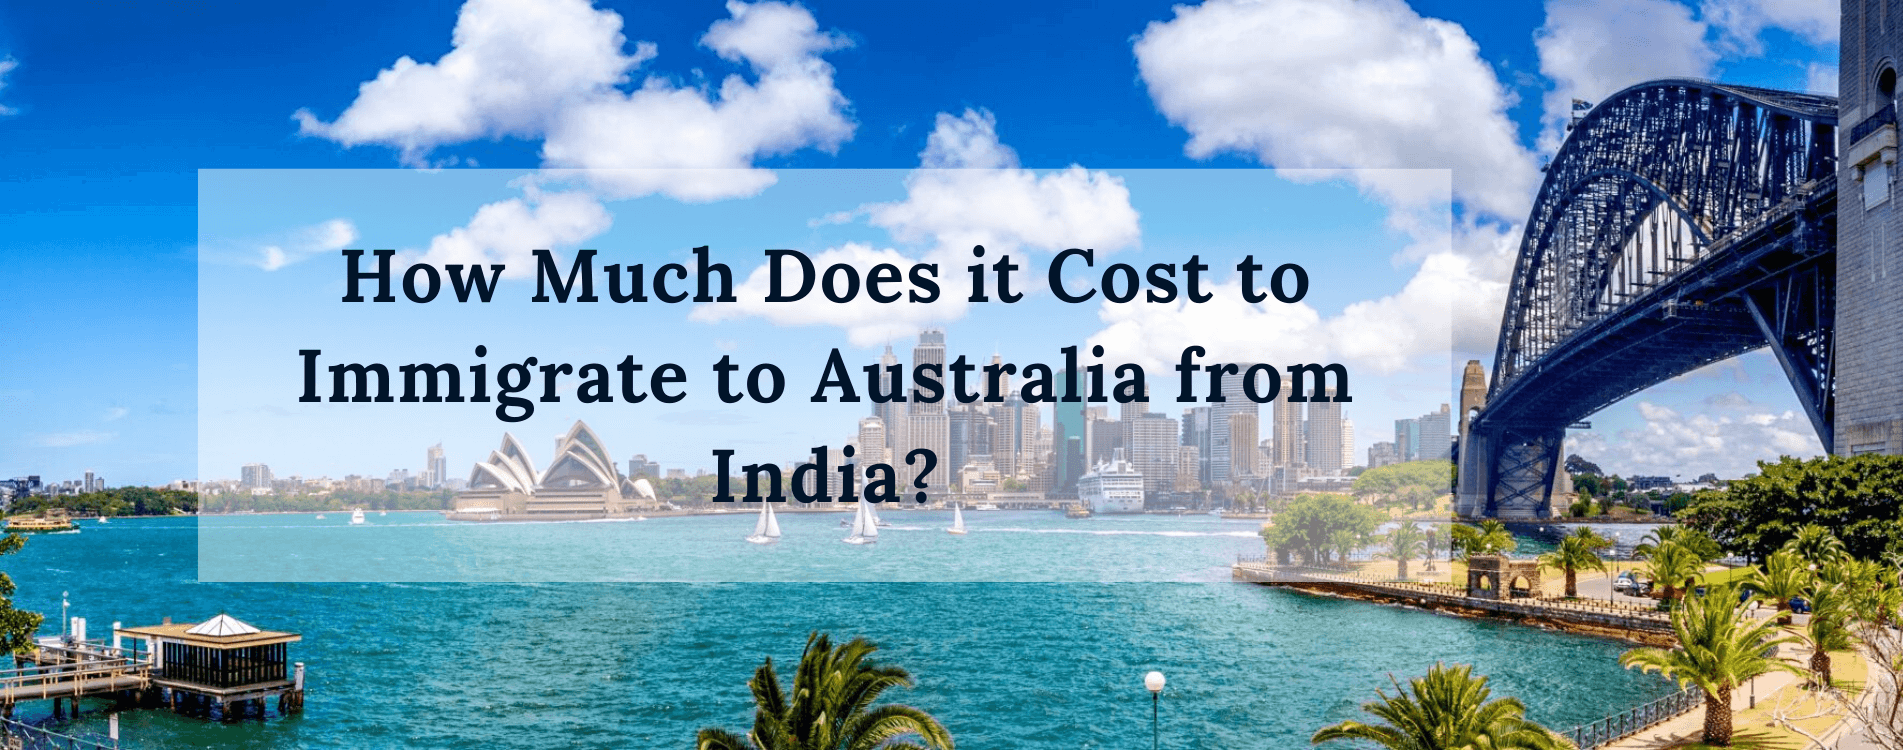 How Much Does it Cost to Immigrate to Australia from India?